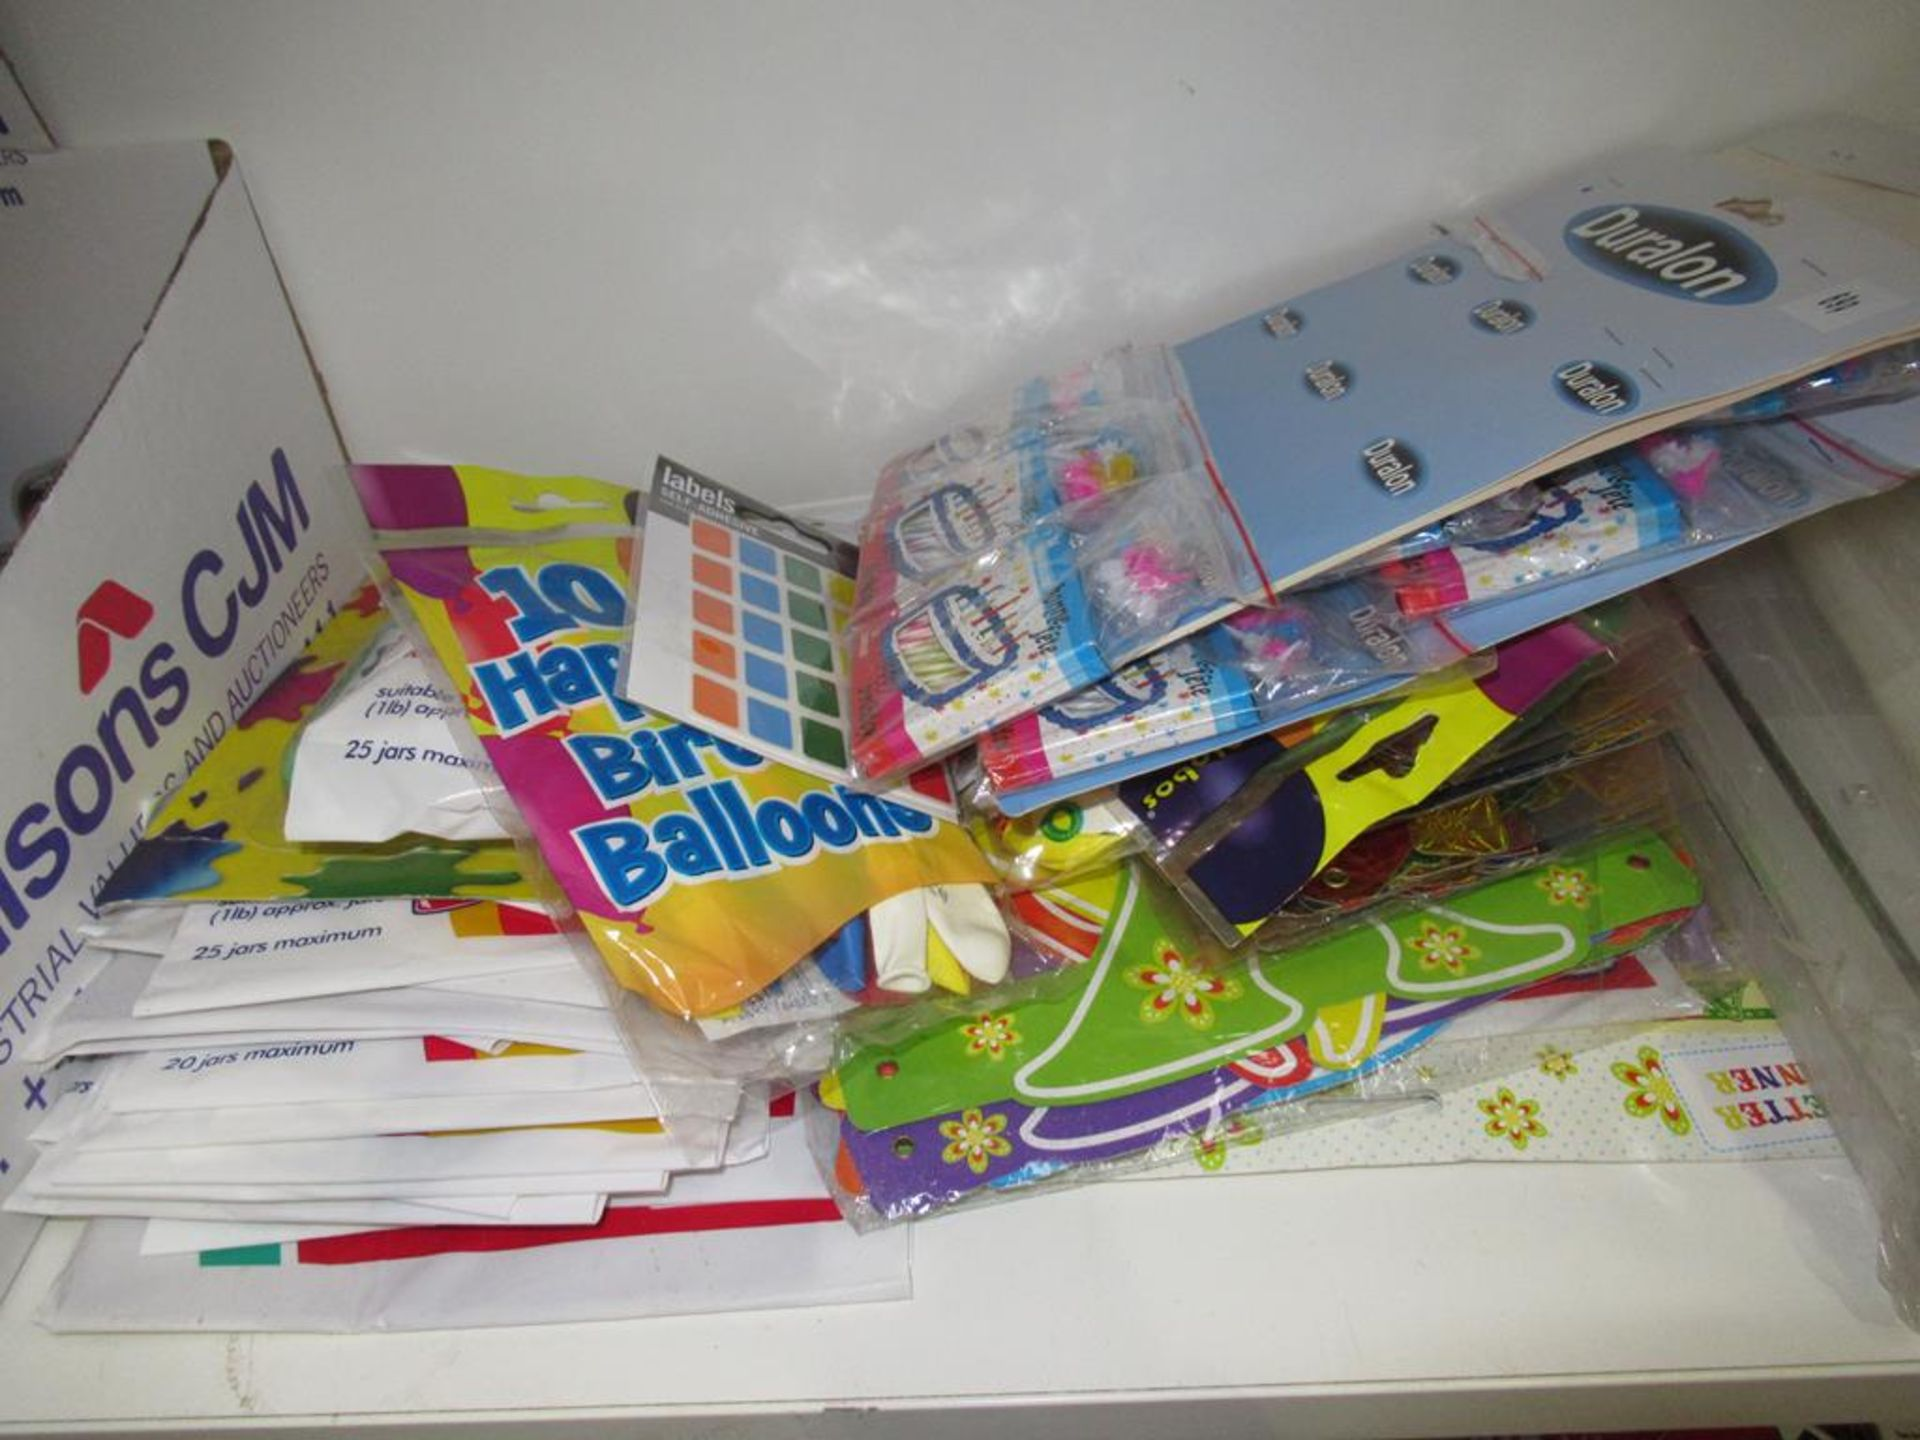 Lot 96 - 2 x shelves to include of Stationary, Balloons, Batteries etc